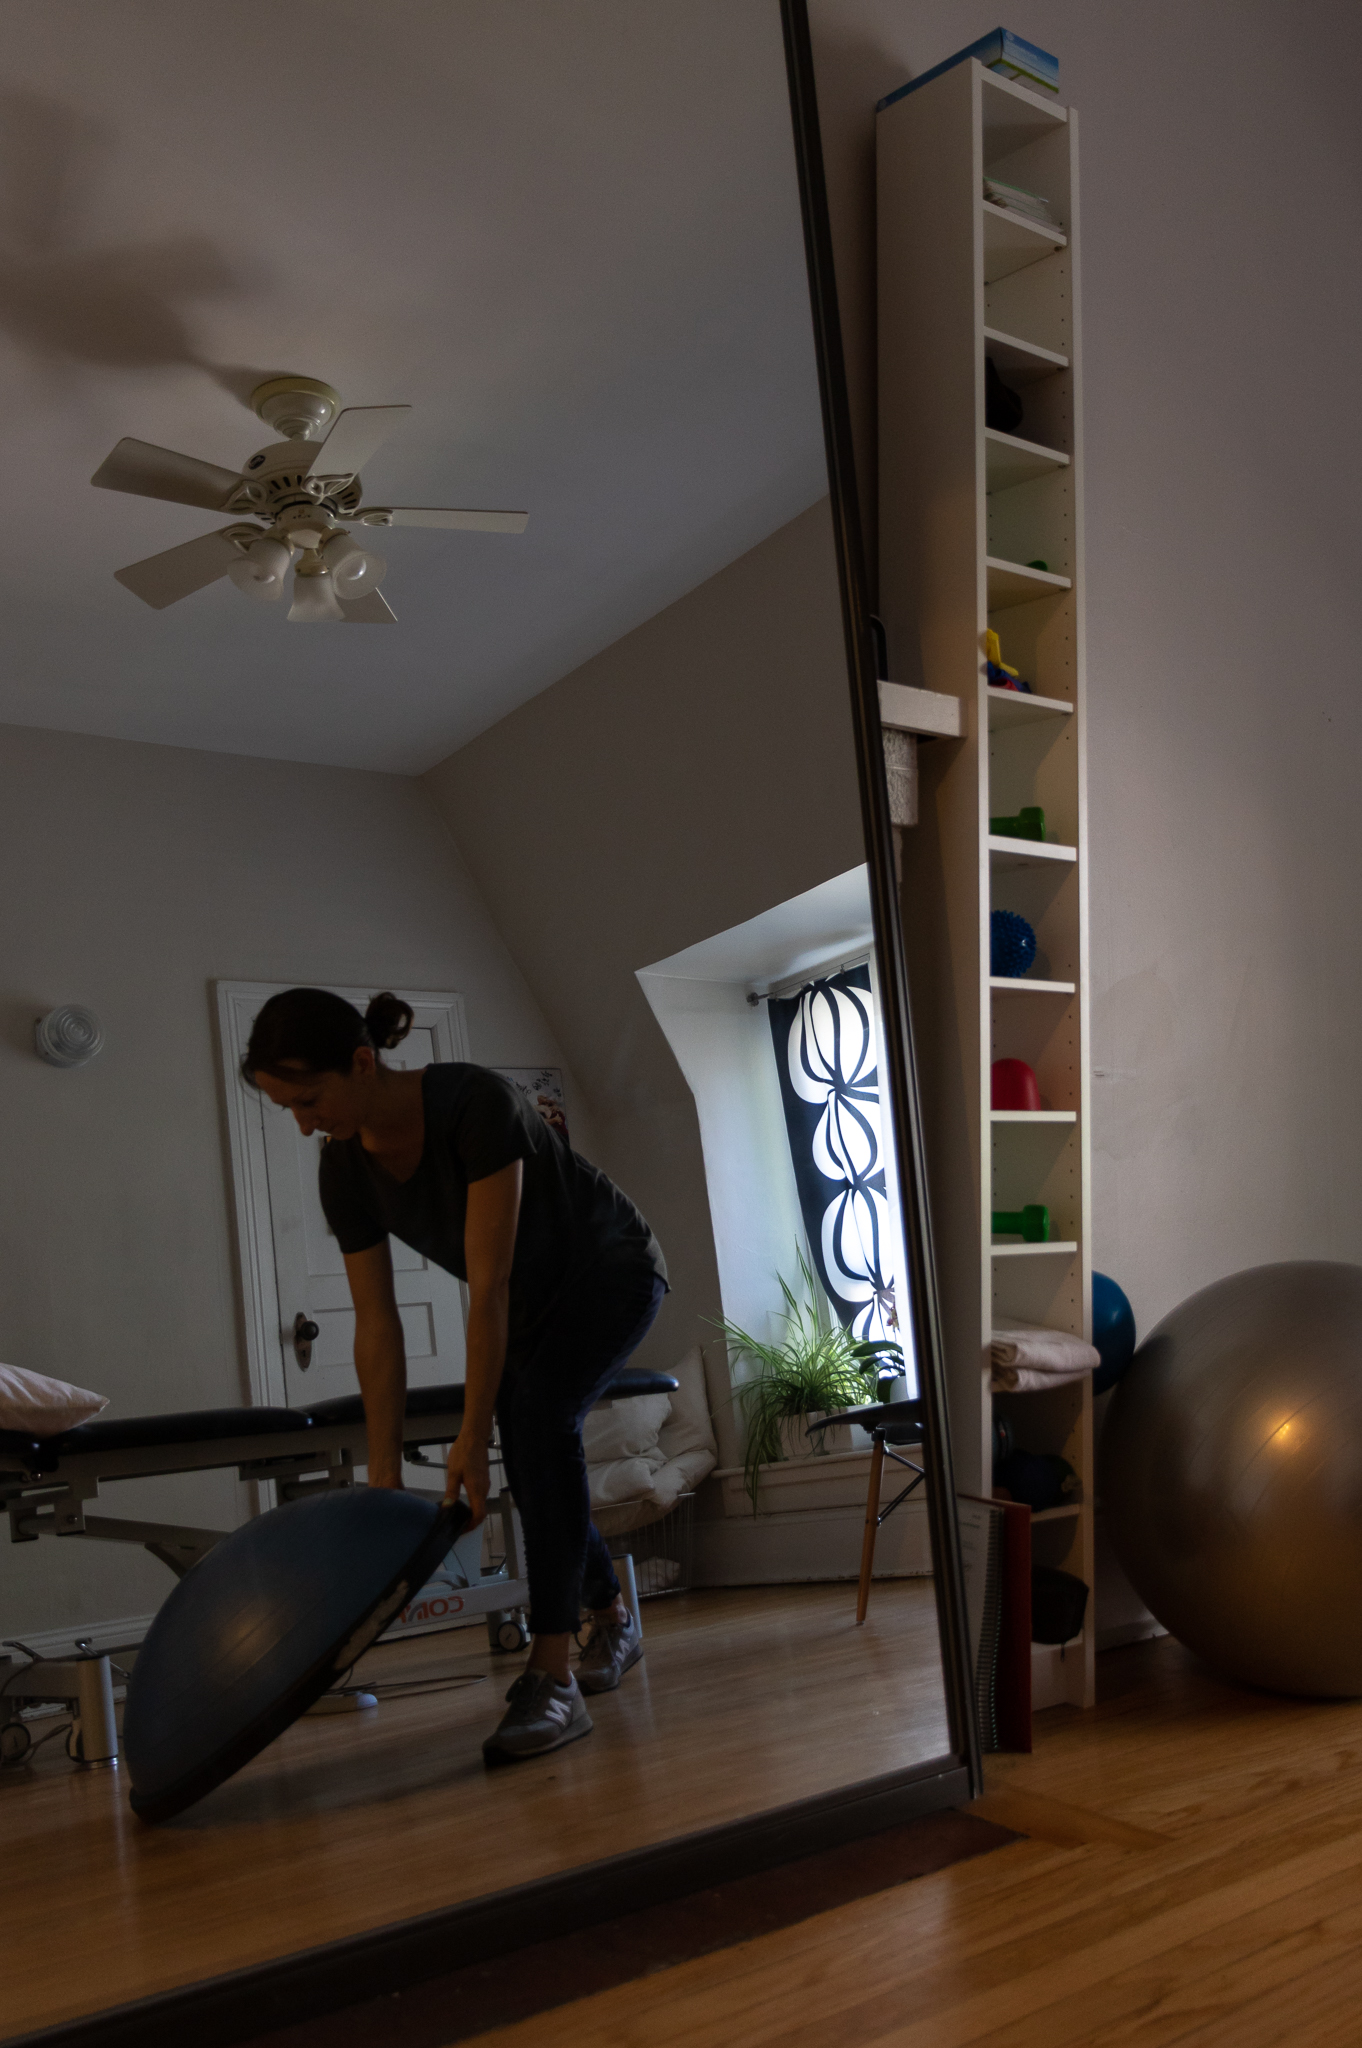 physical therapist working in comfortable and stylish clothing